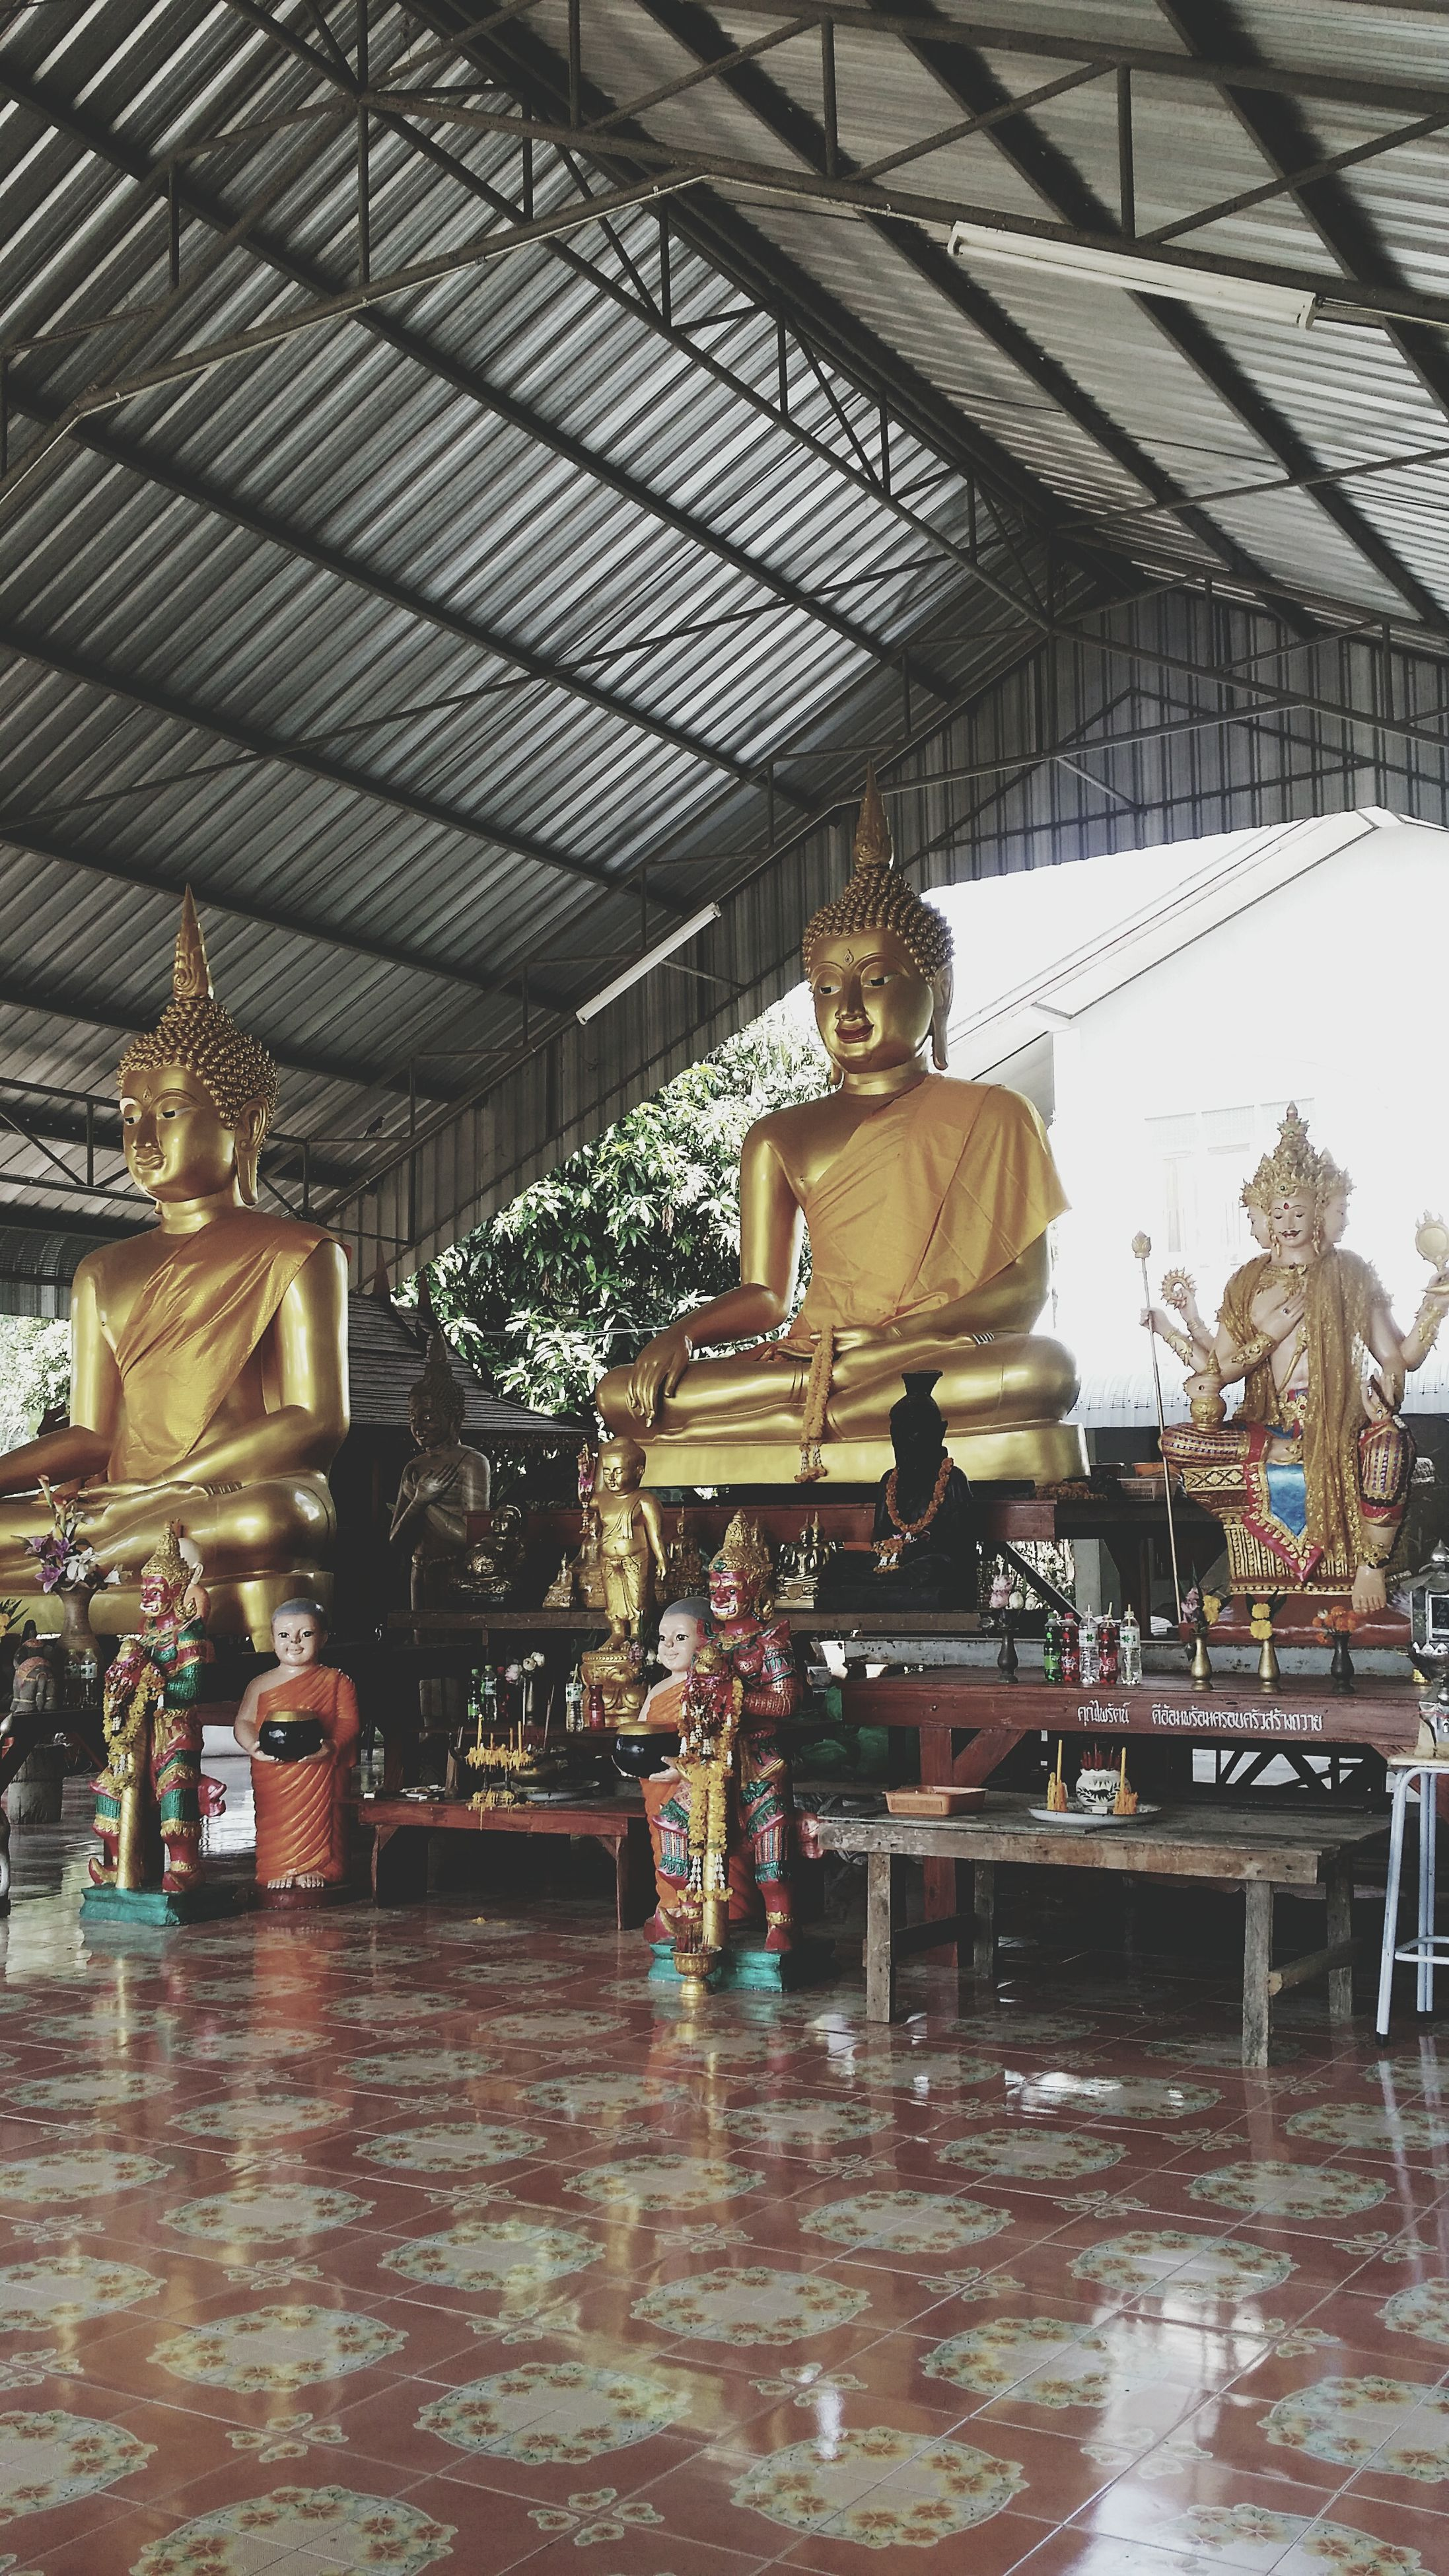 indoors, religion, place of worship, spirituality, temple - building, architecture, art and craft, built structure, statue, art, sculpture, human representation, creativity, tradition, cultures, ornate, decoration, temple